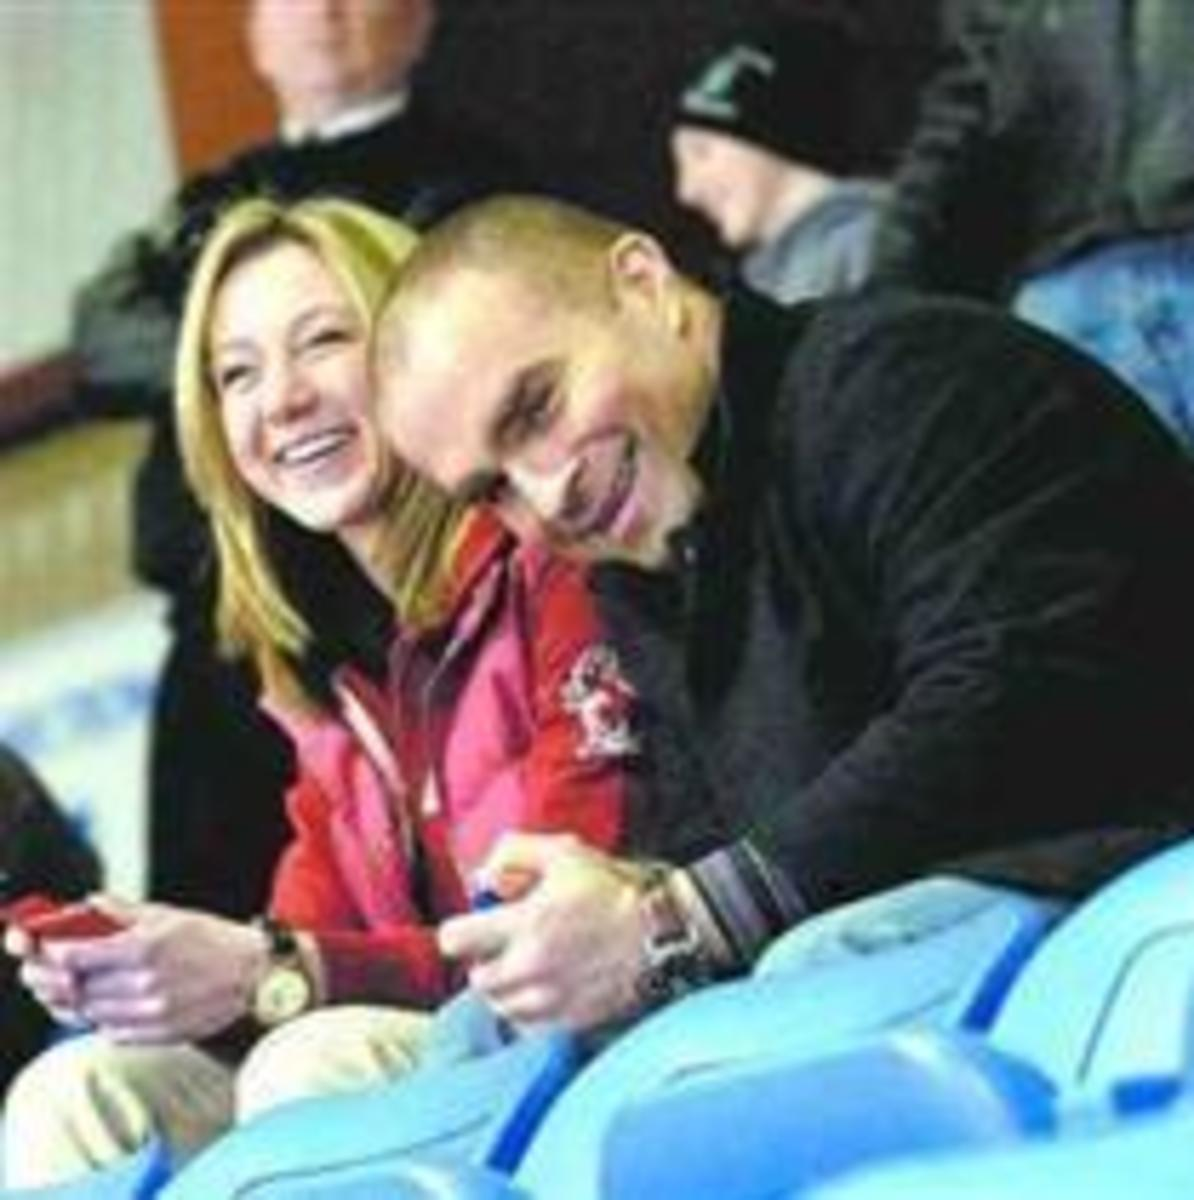 Belinda with her current beau, Toronto Maple Leaf Hockey Star Tie Domi